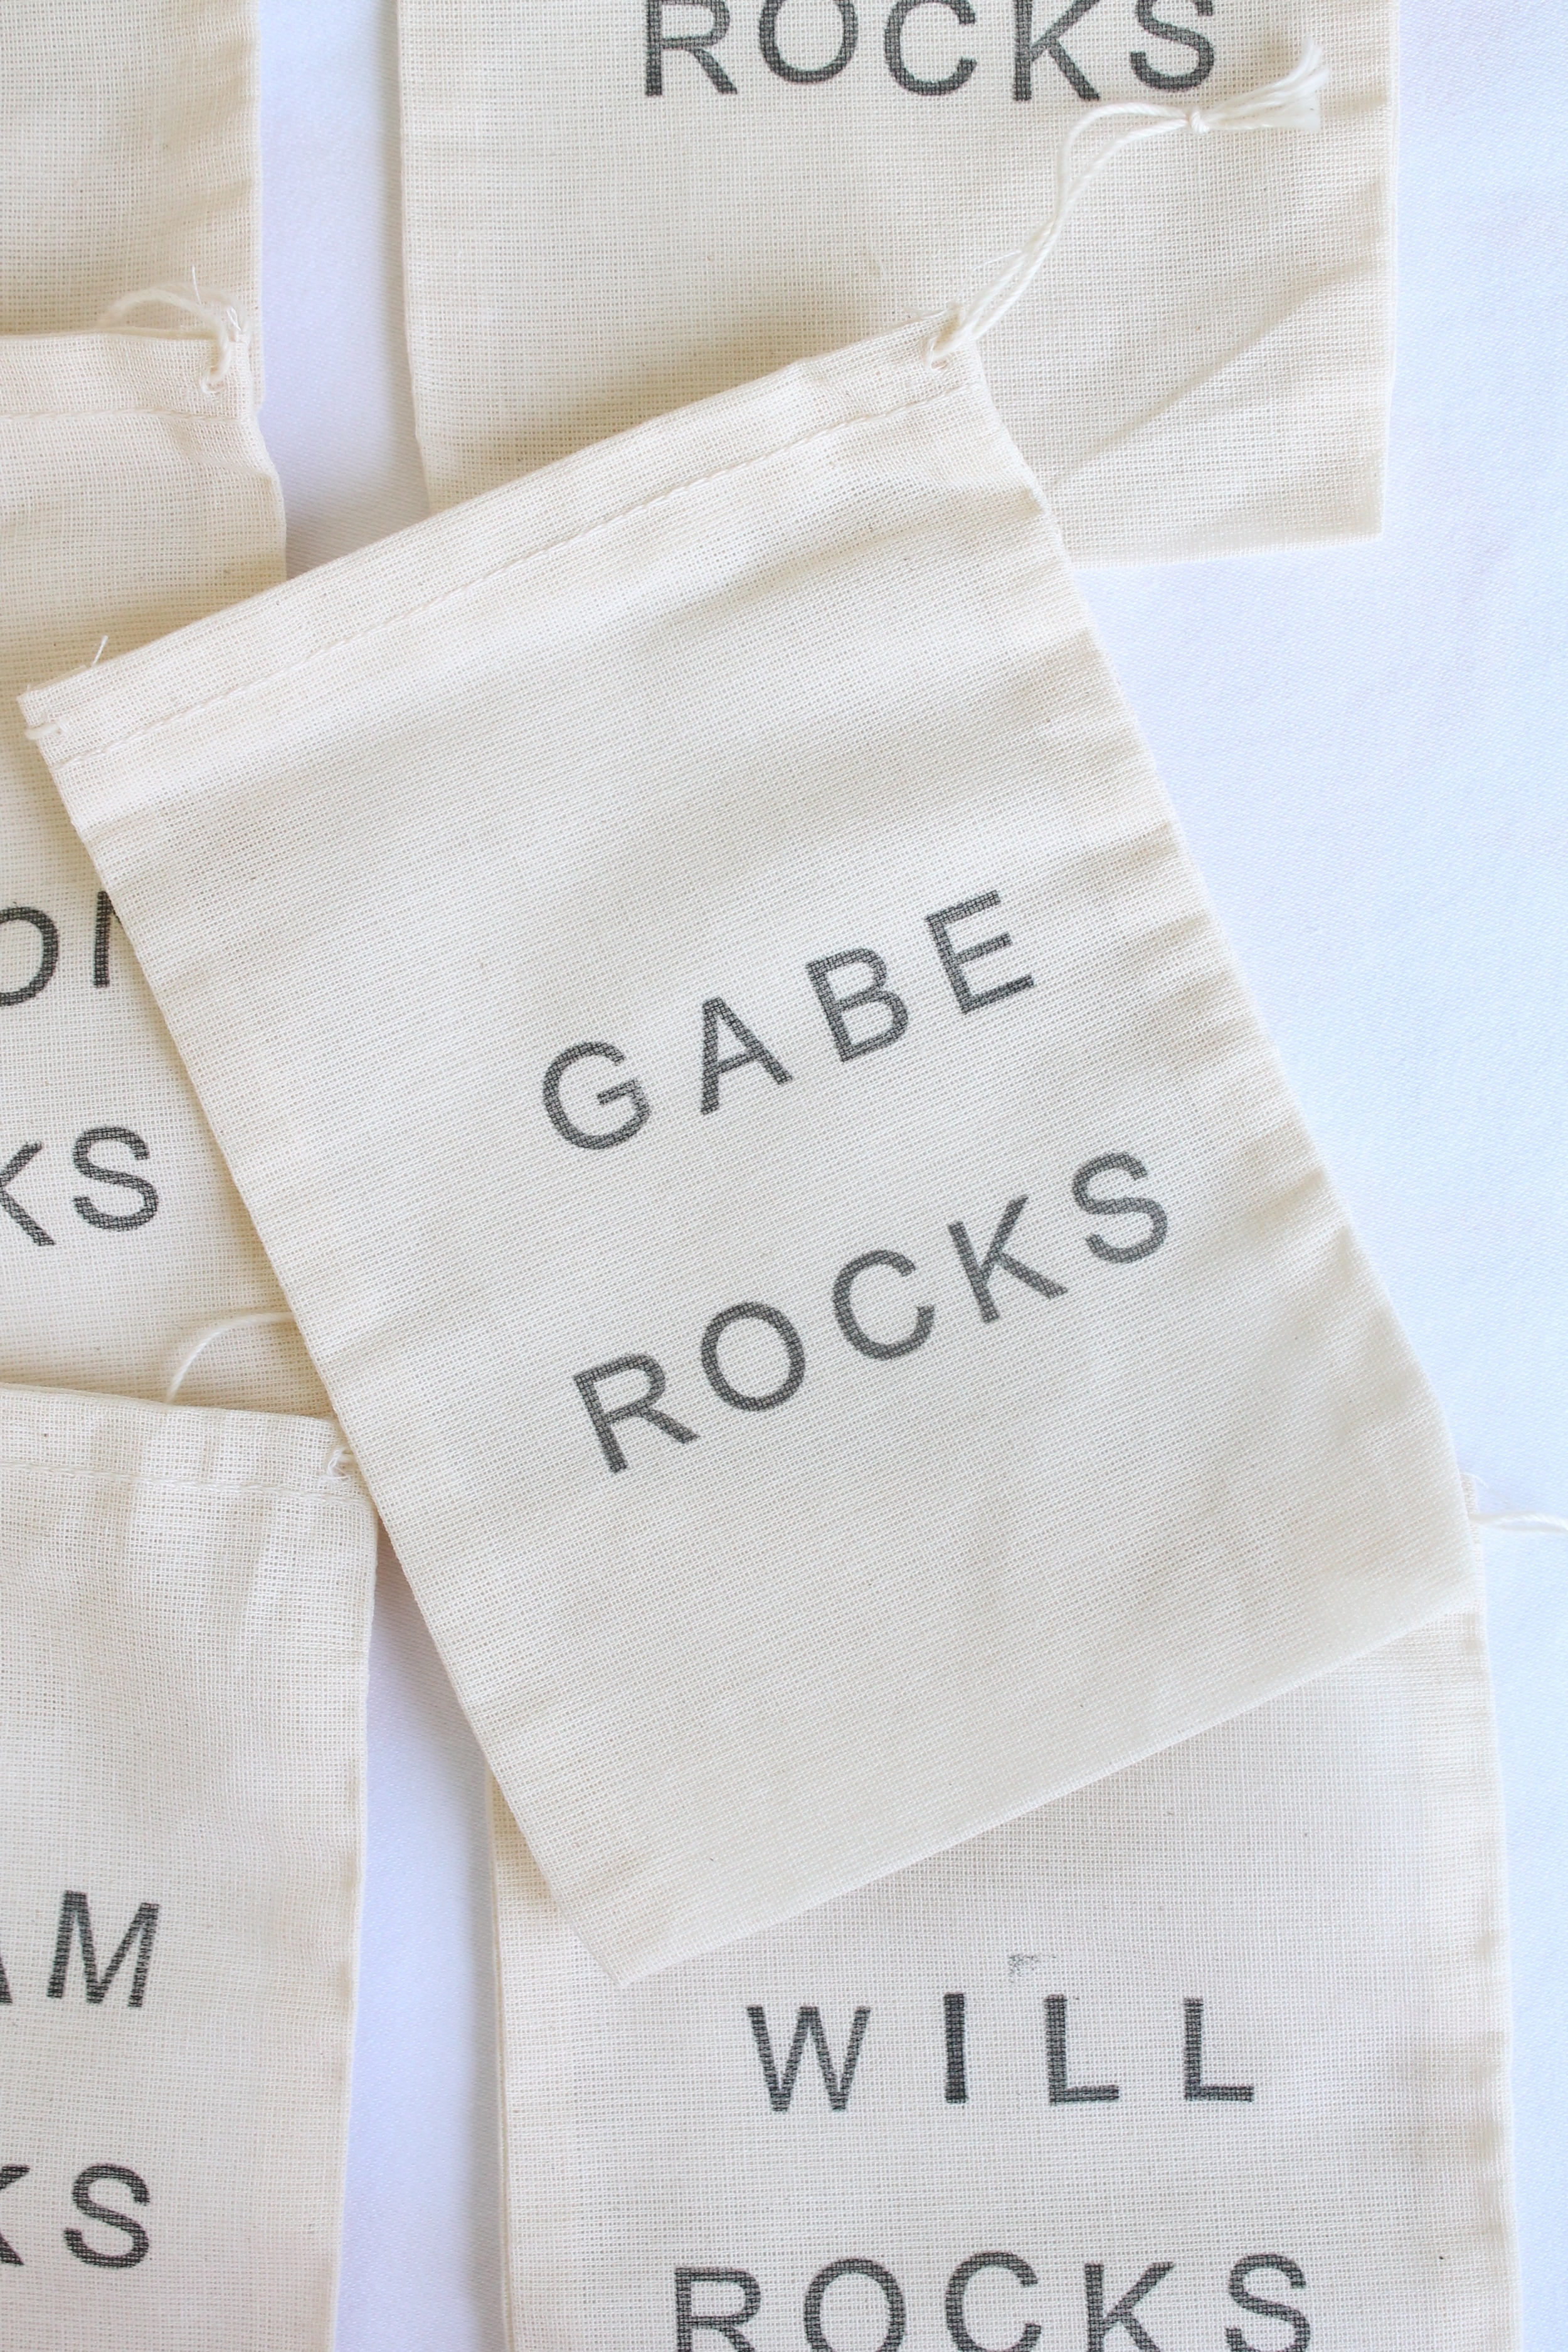 Little cloth bags for a birthday party. Can be stamped with whatever you like.